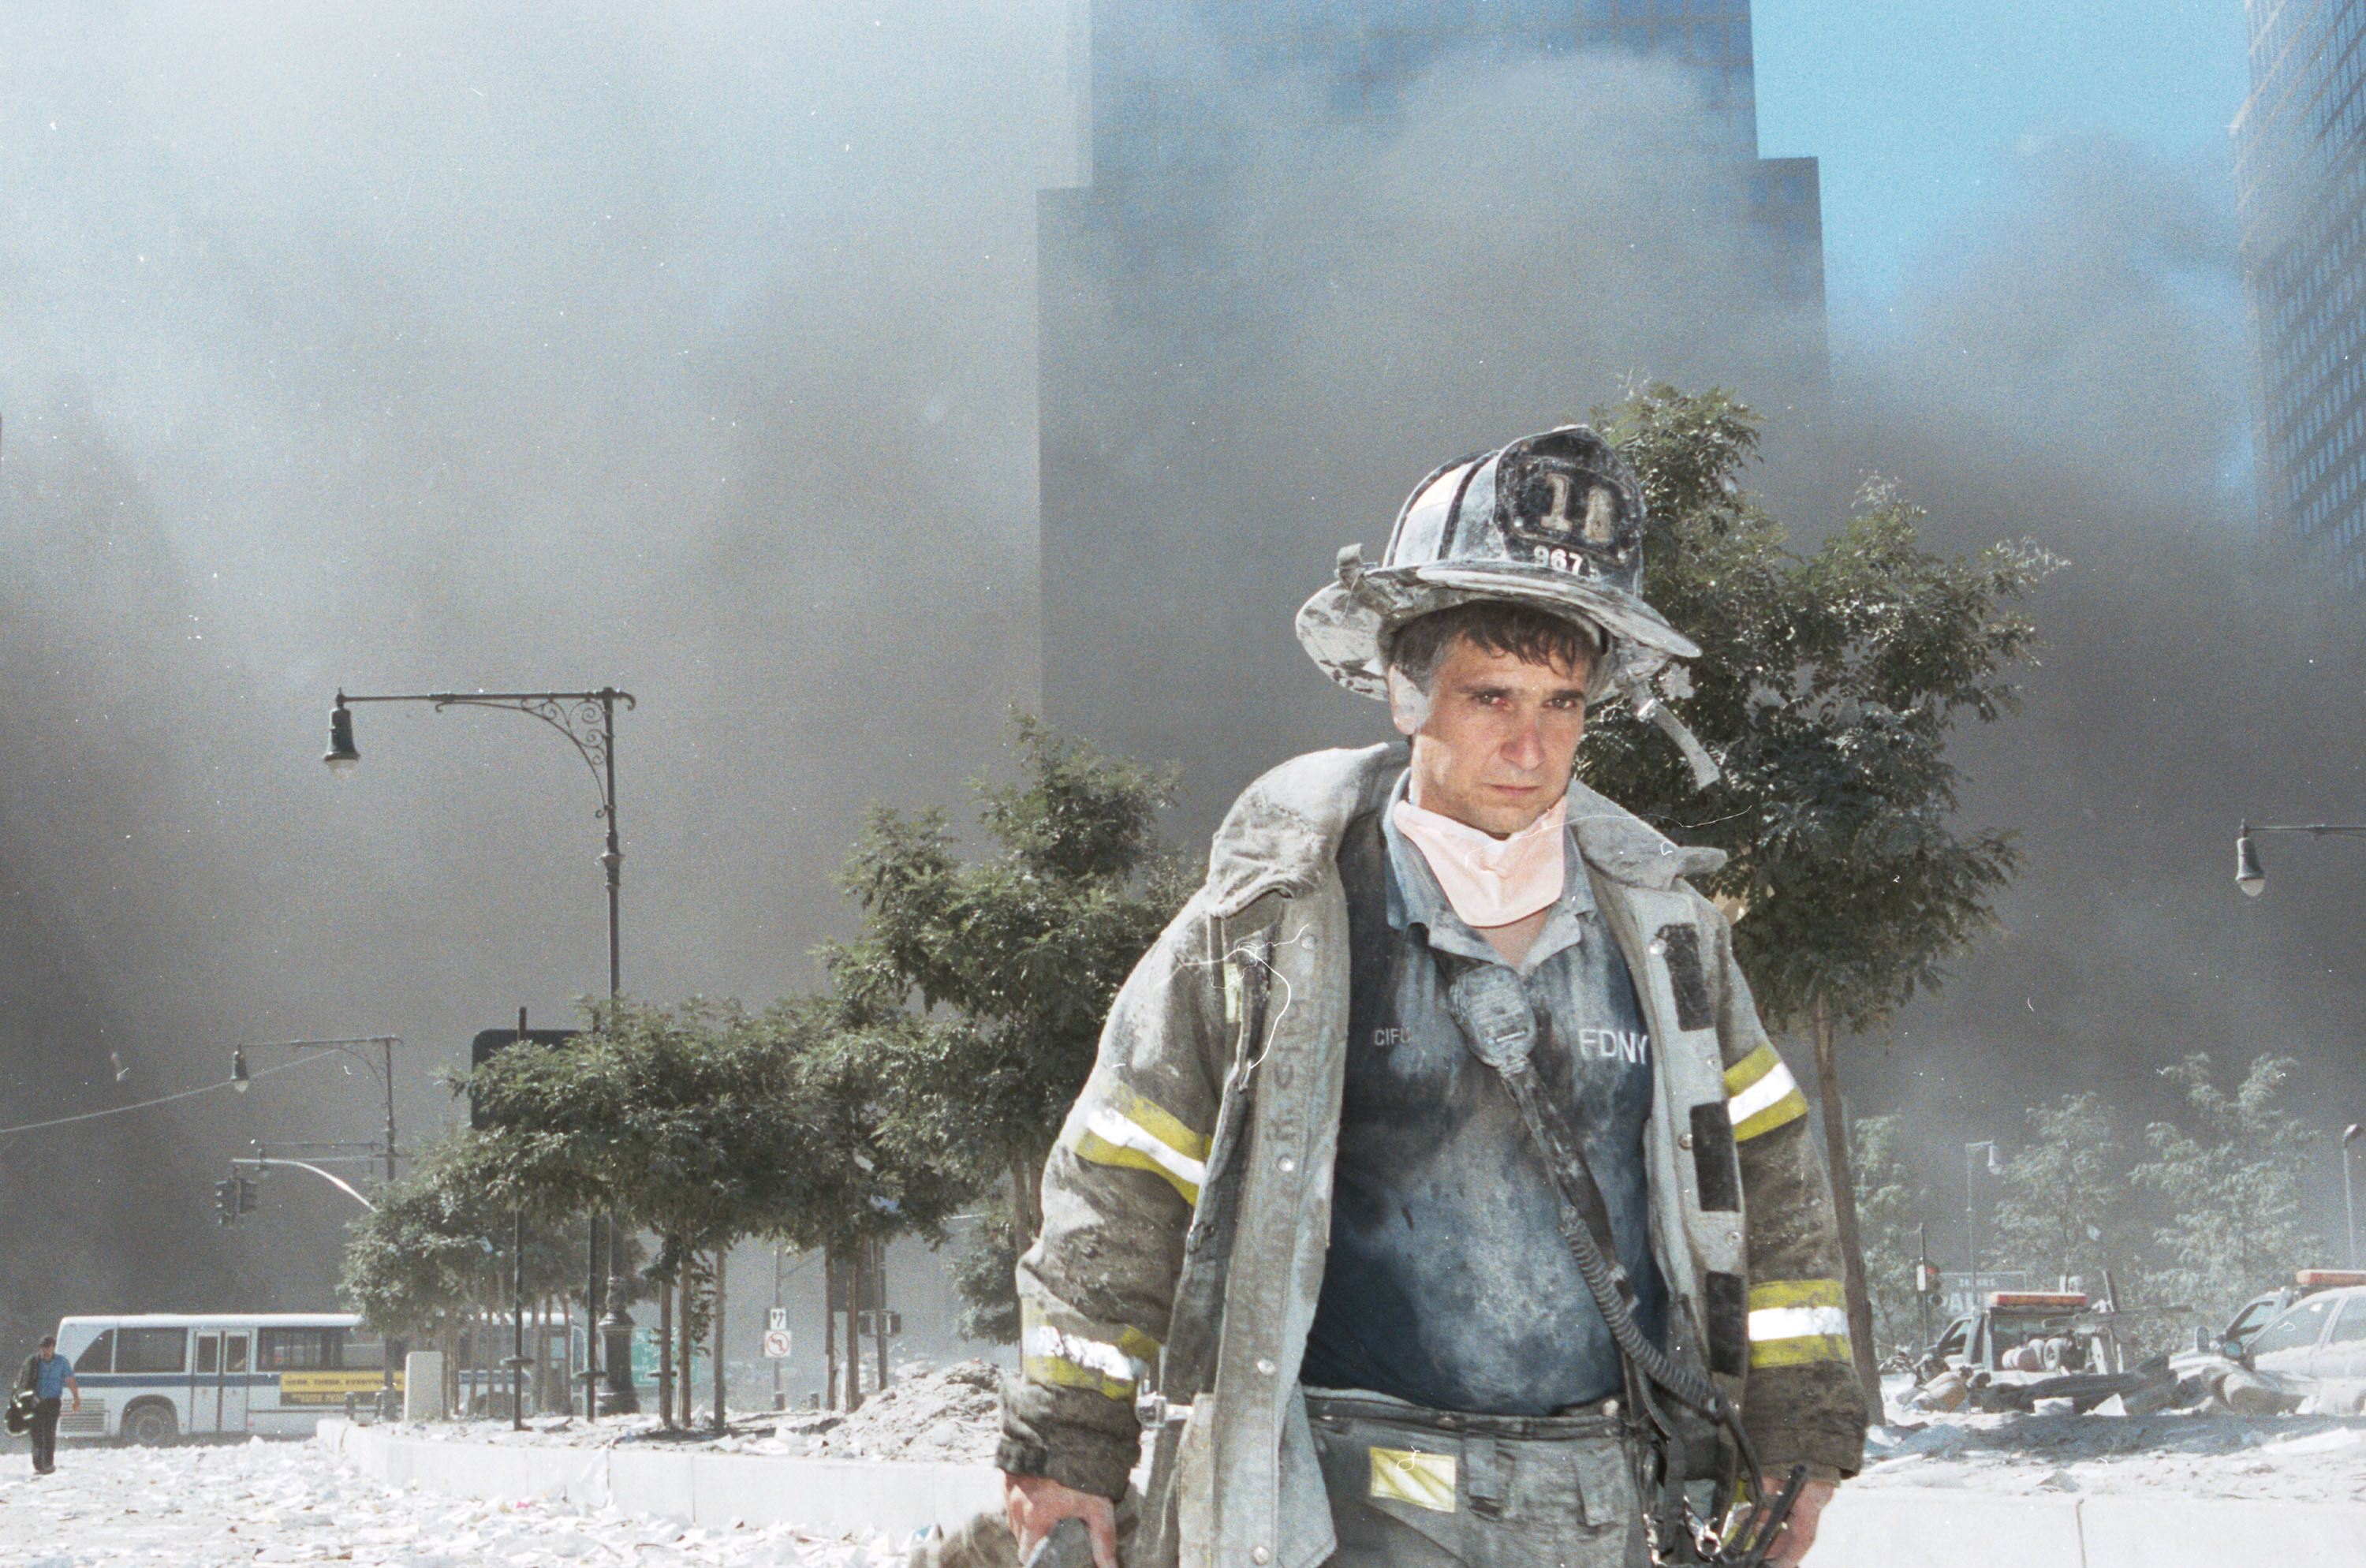 Firefighter stands among the debris of the fallen towers in New York City